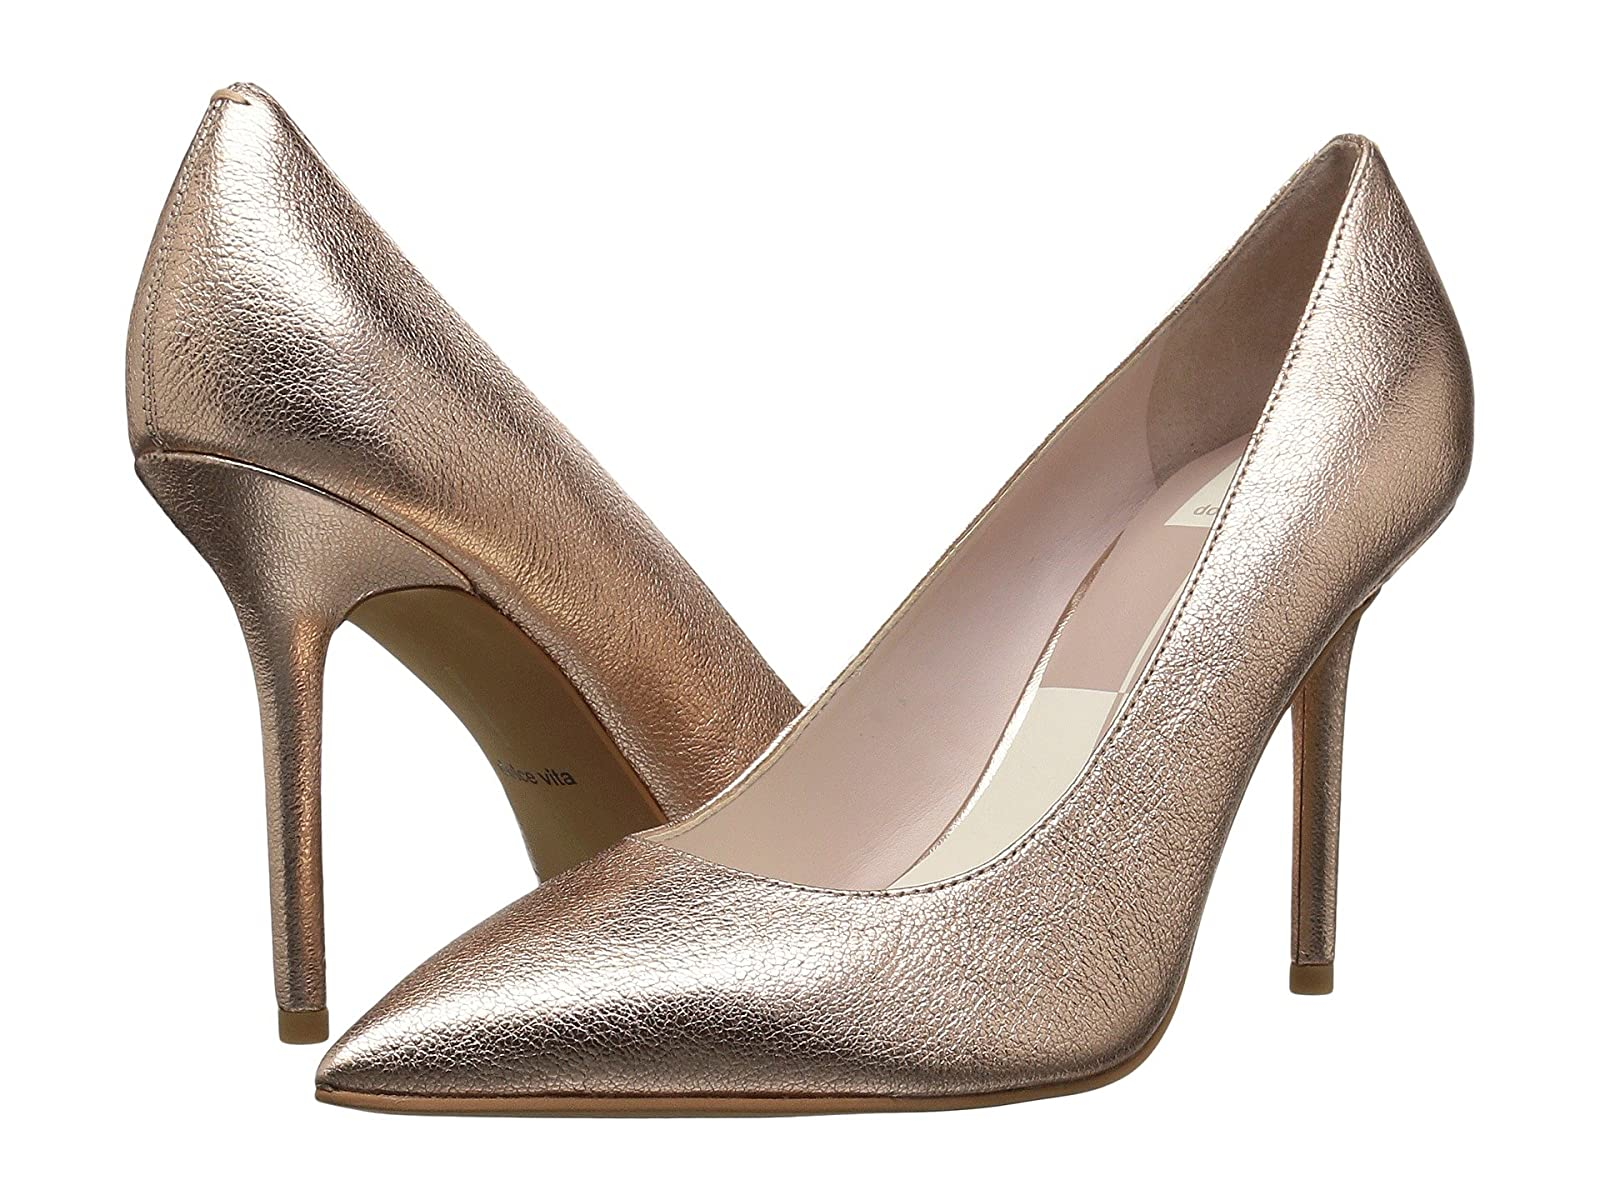 Dolce Vita MikaCheap and distinctive eye-catching shoes